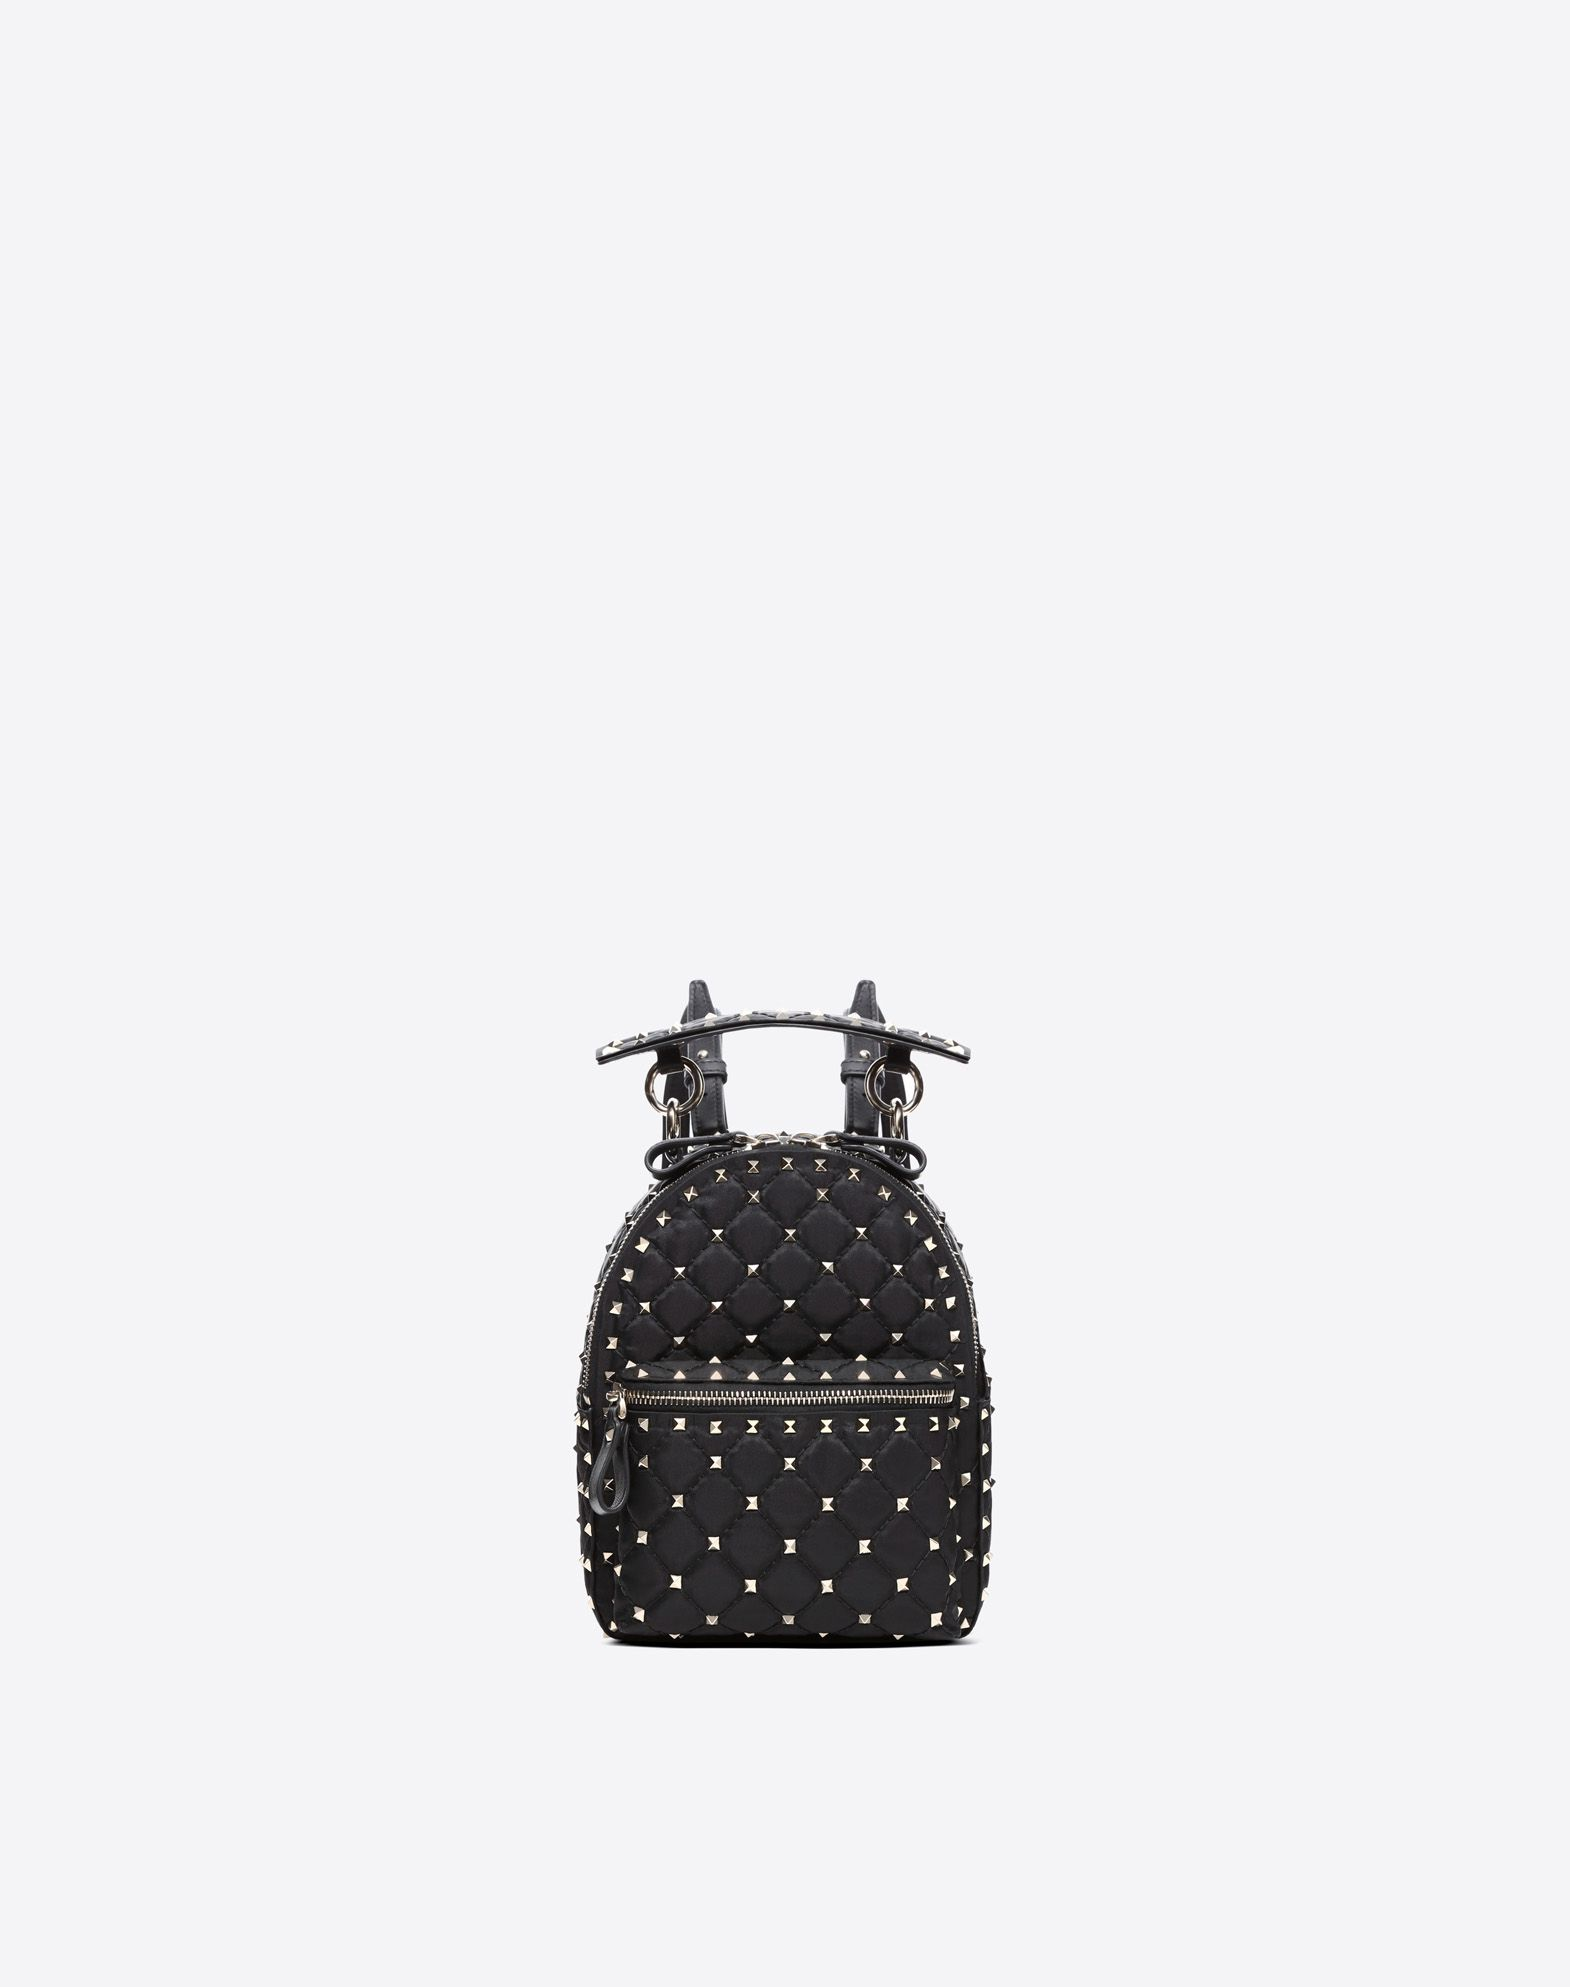 VALENTINO Techno fabric Studs Solid color Dual zip closure External pocket Internal pocket  45400754fv